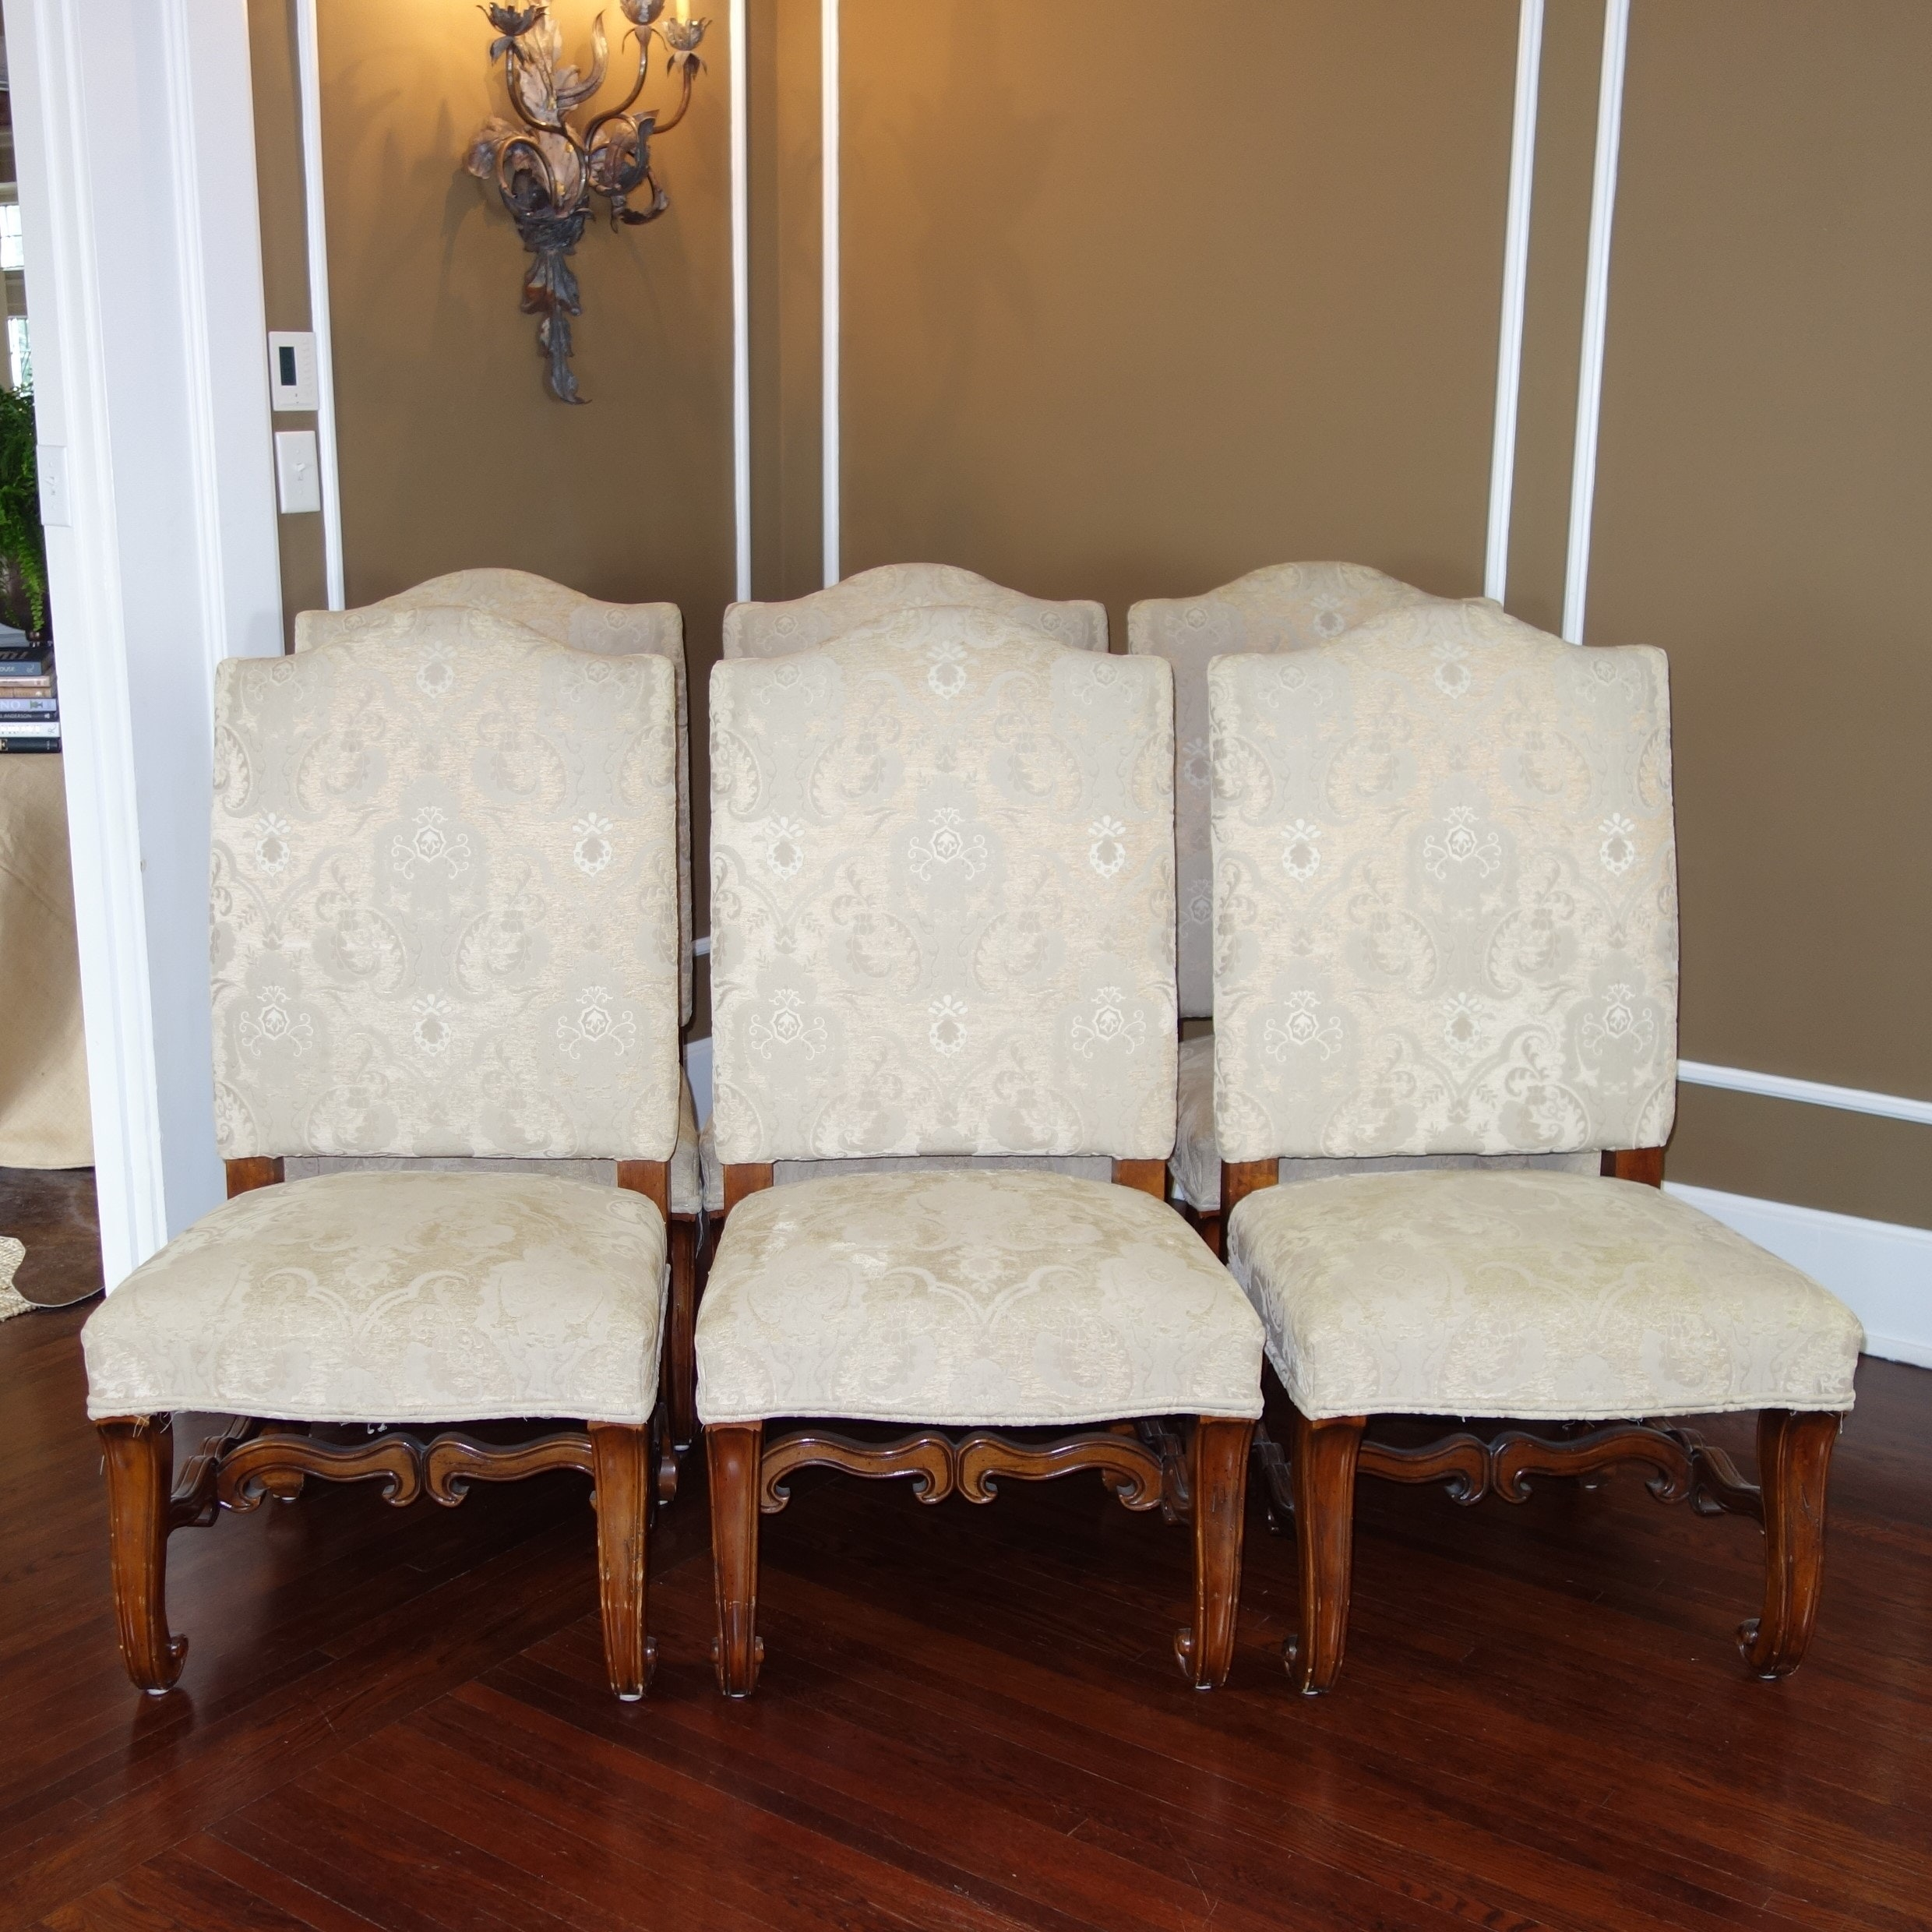 Charming Six French Style Dining Side Chairs By Touchstone Collections ...